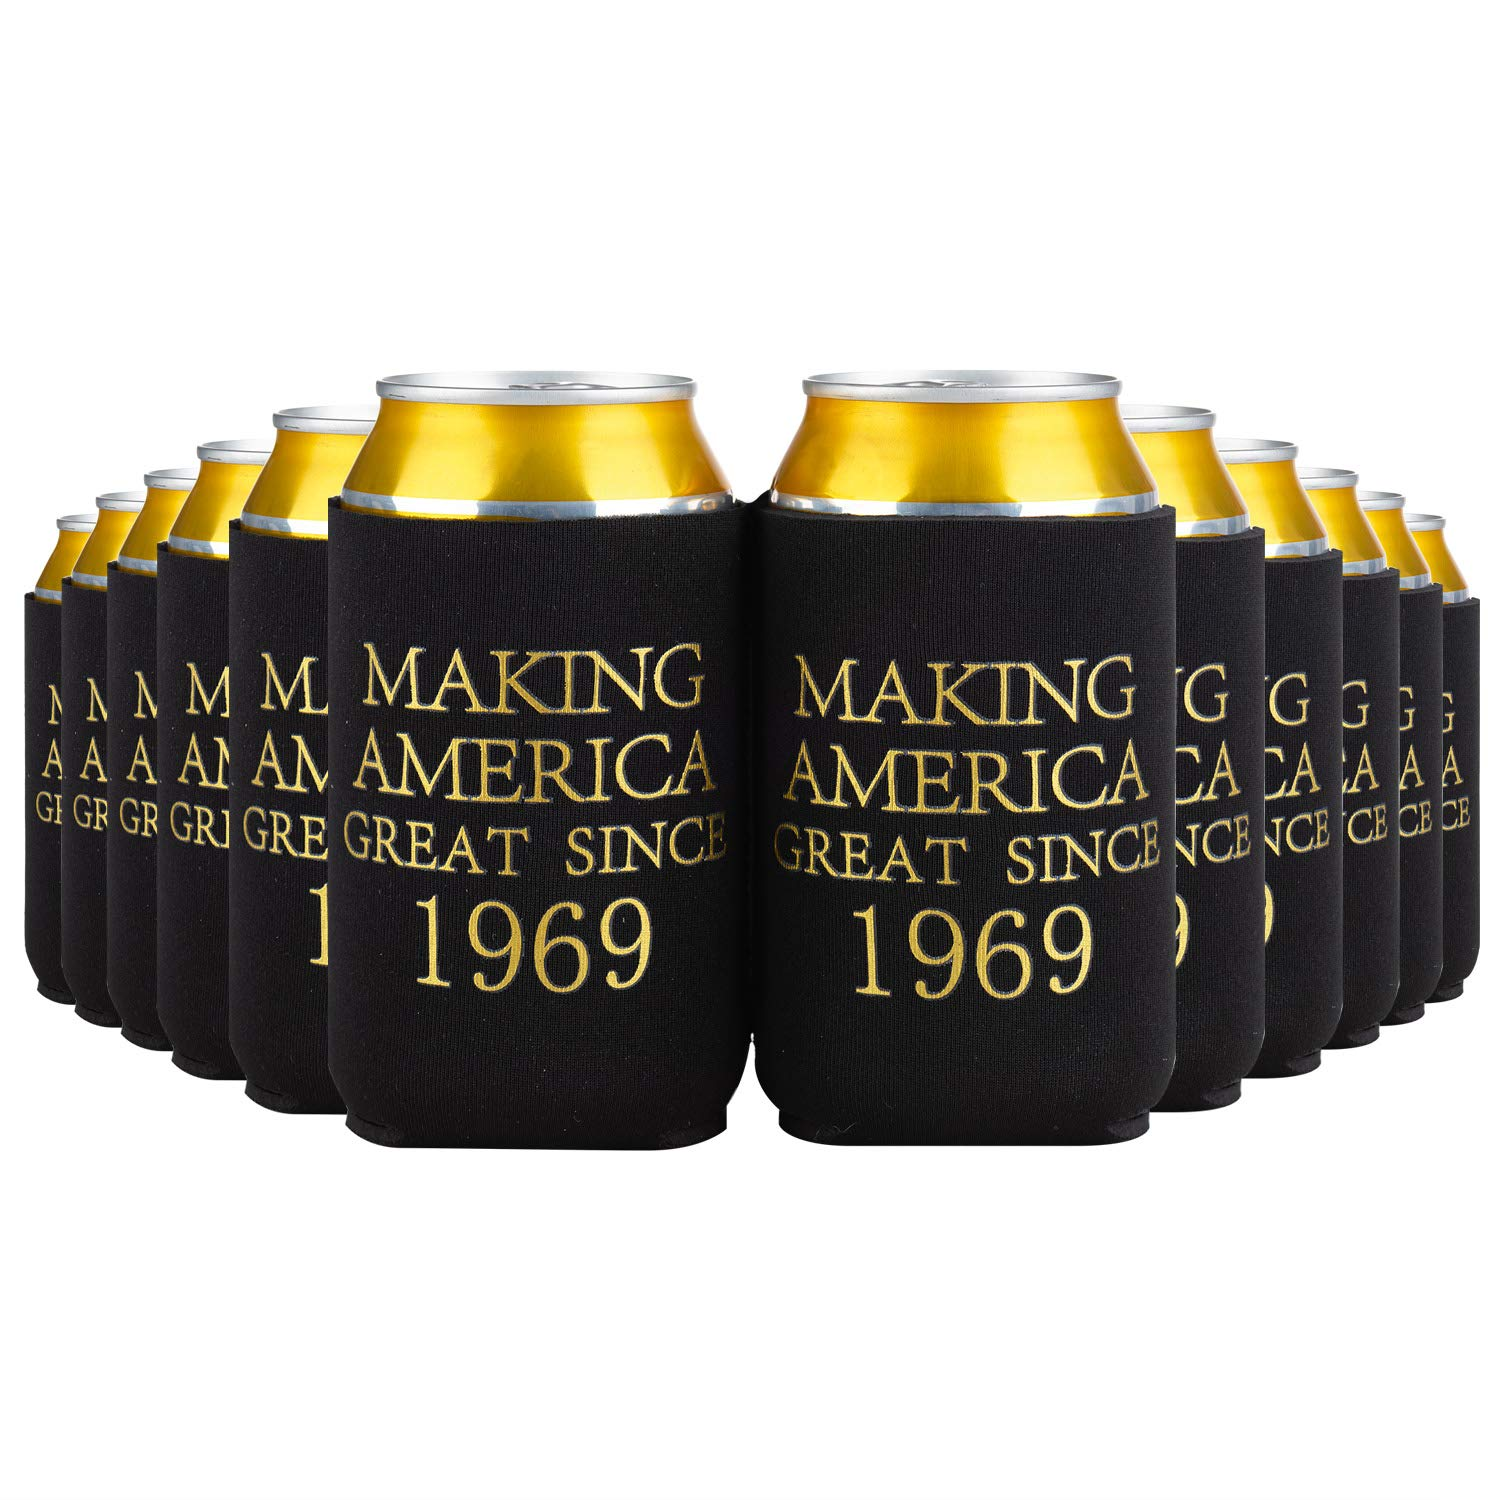 Crisky 50th Birthday Beer Sleeve, 50th Birthday Can Cooler Insulated Covers, 50th Birthday Decorations Black Gold Making America Great Since 1969, Neoprene Coolers for Soda, Beer, Can Beverage, 24 Pcs by Crisky